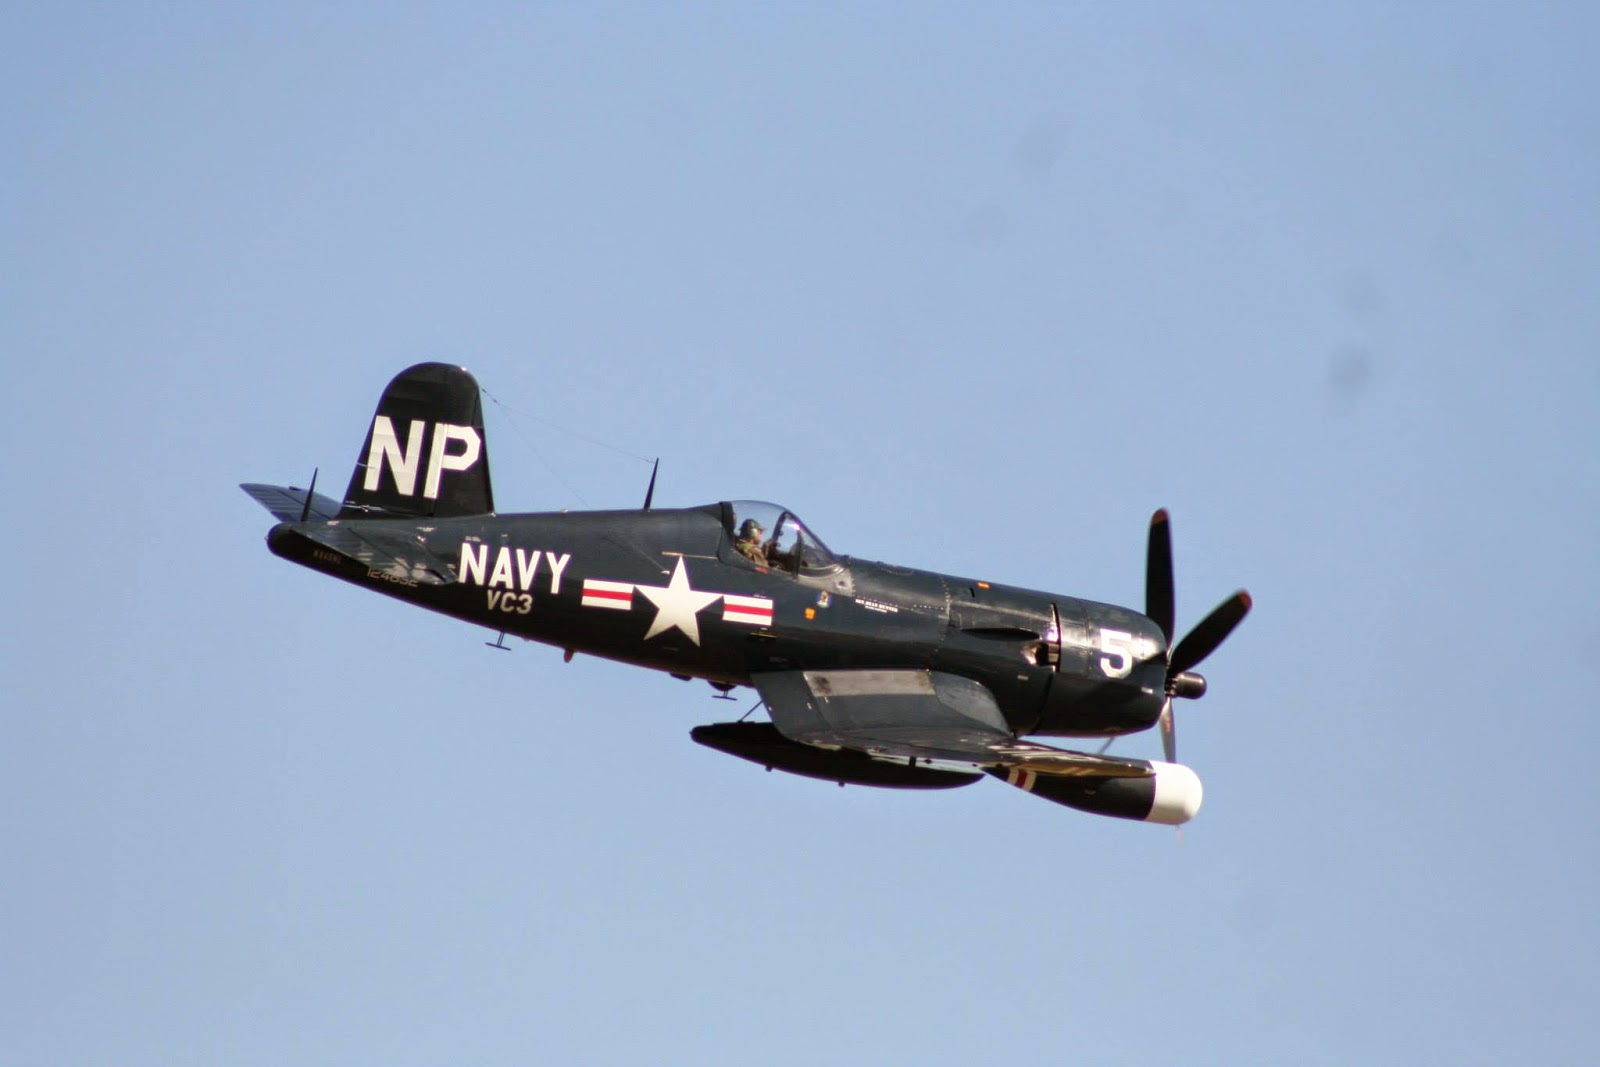 Dan McCue in F4U Corsair